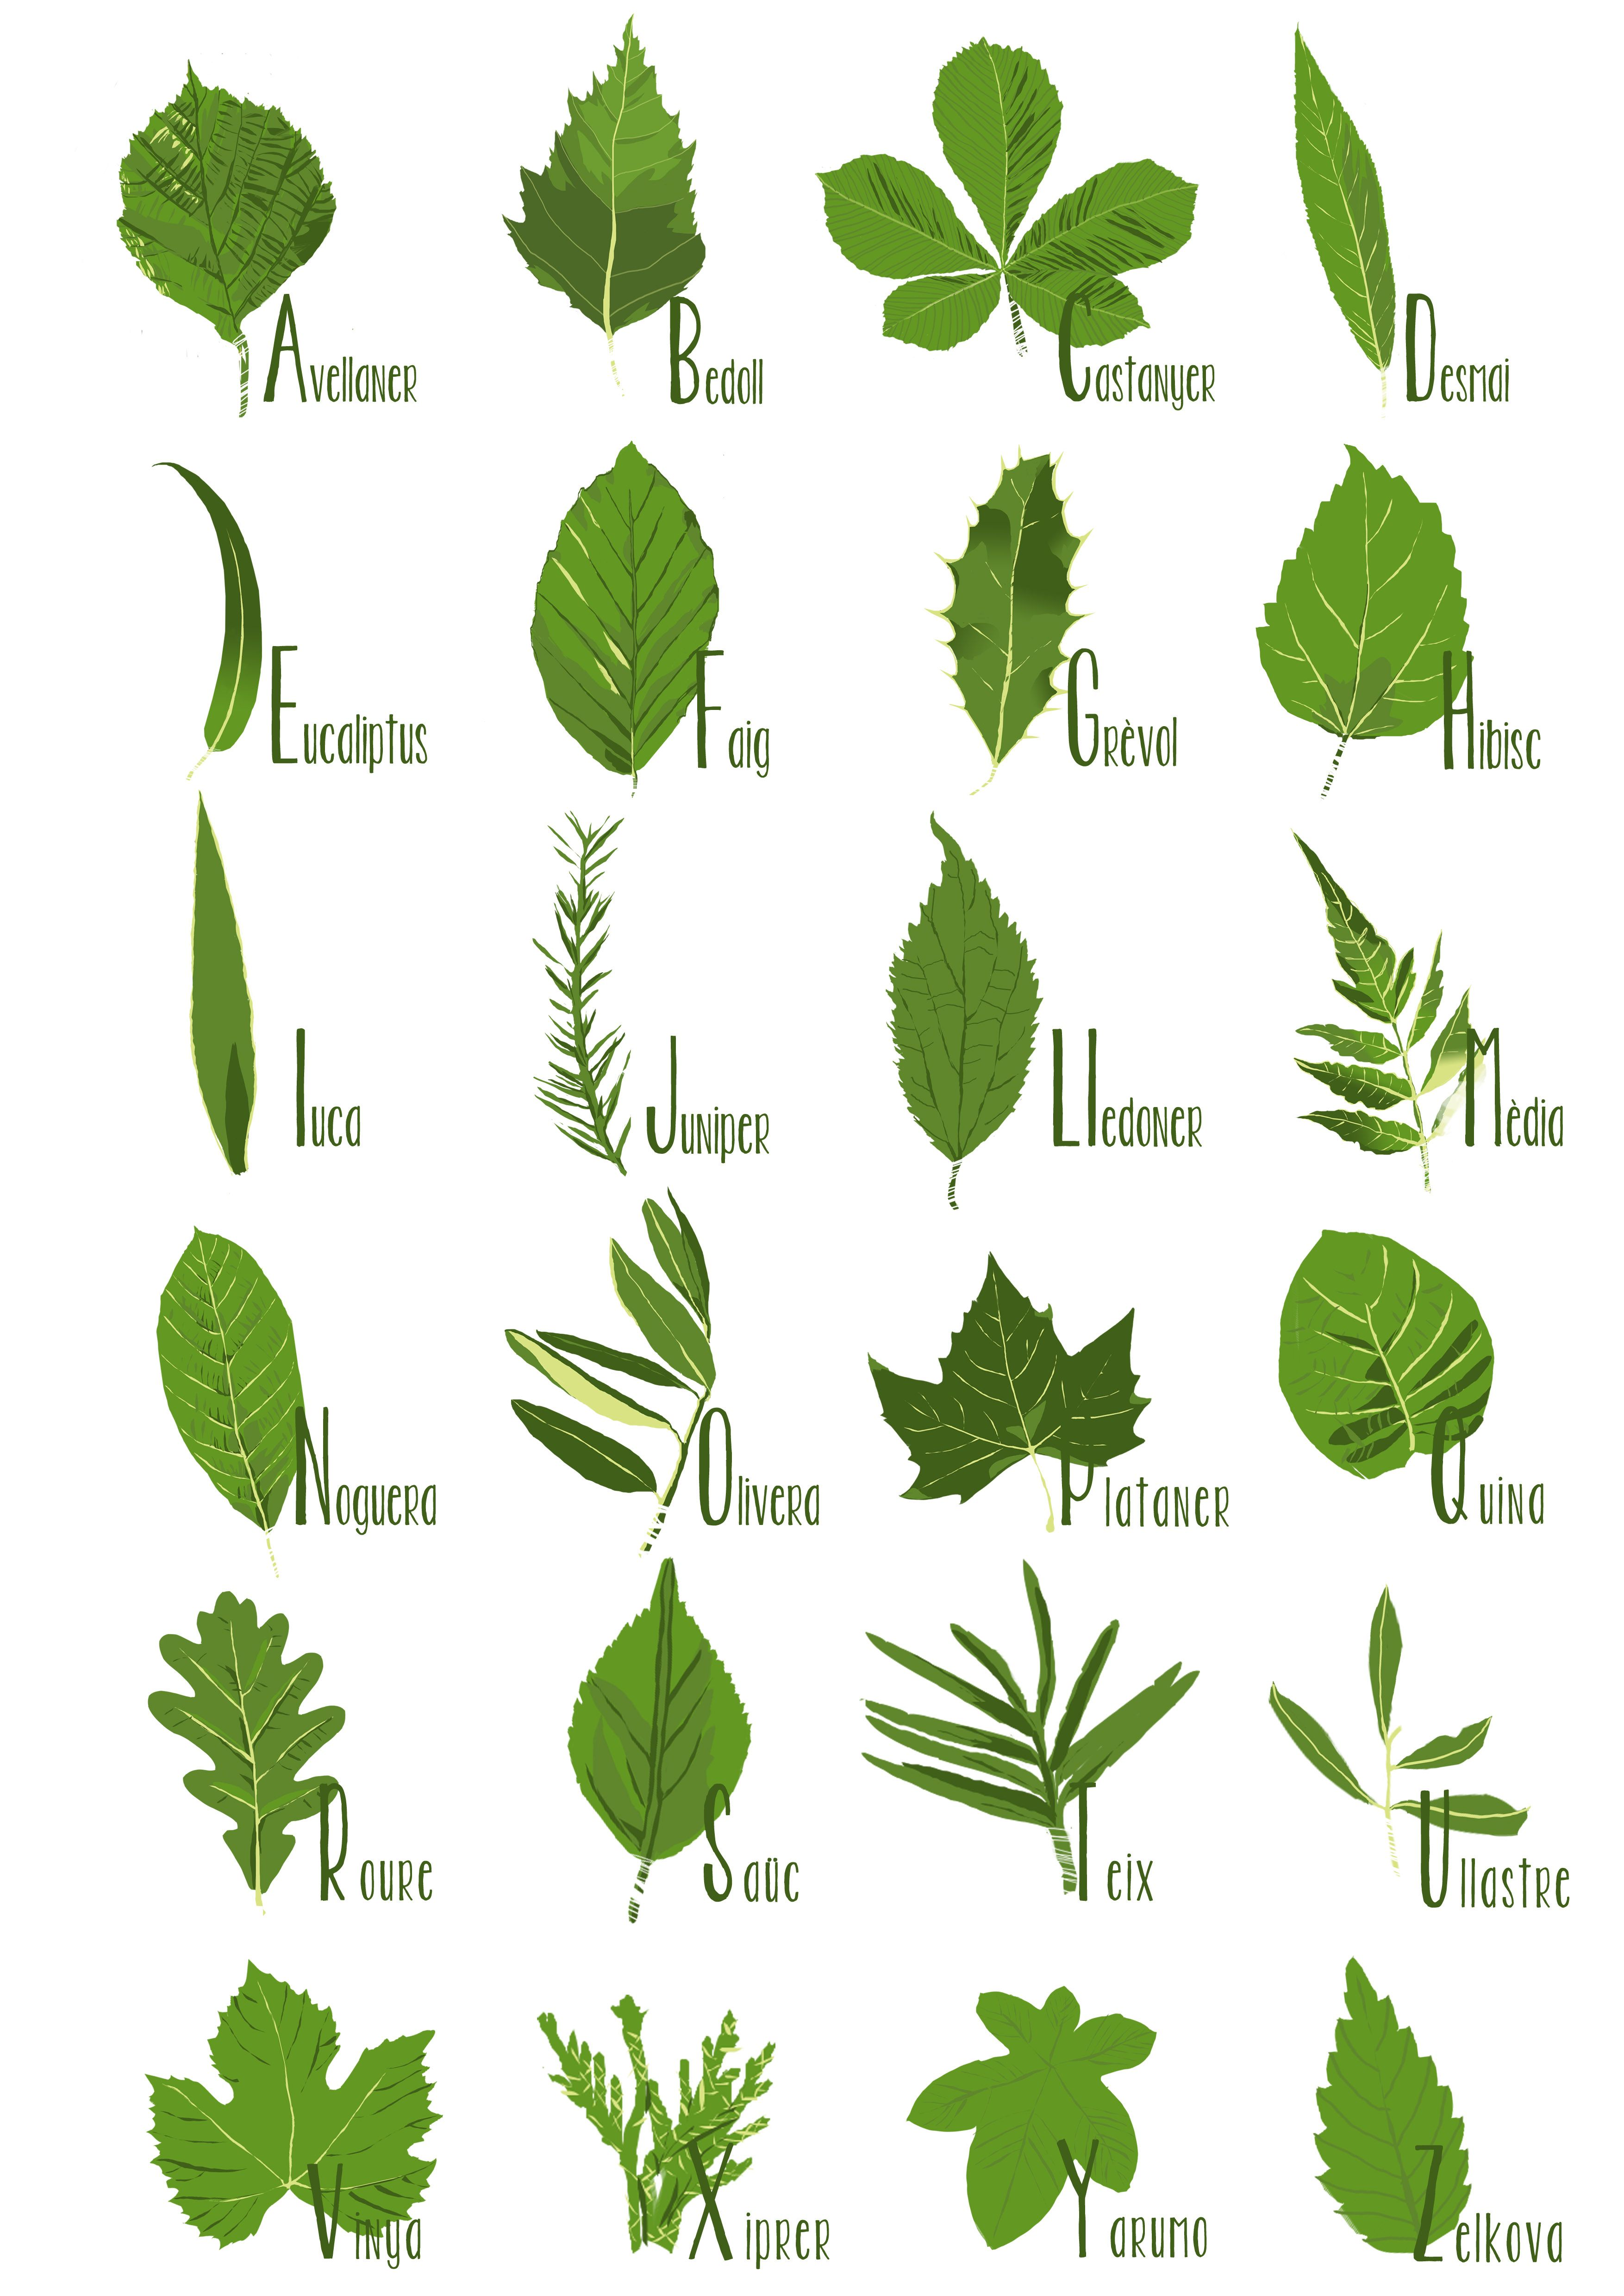 Abecedari de fulles tintasonora class treetree studytree identificationscience also how can leaves identify  tree an amazing guide to leaf rh pinterest